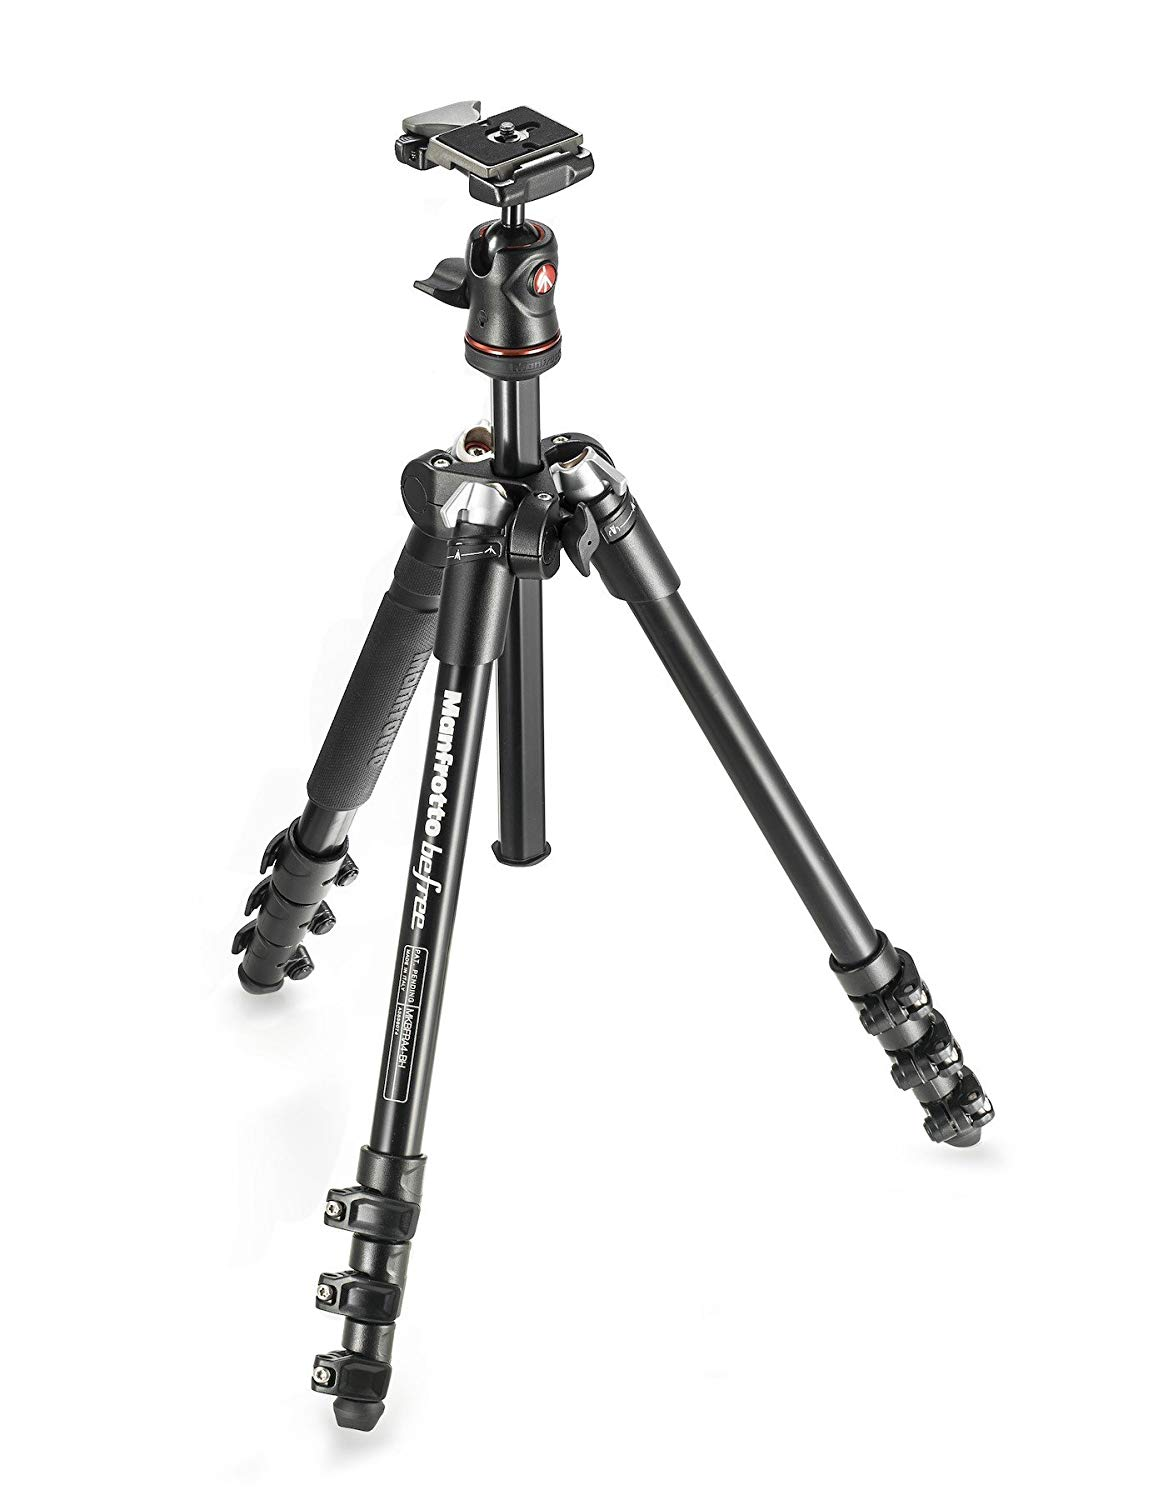 The perfect Travel Tripod. Lightweight and small, the Manfrotto Befree!